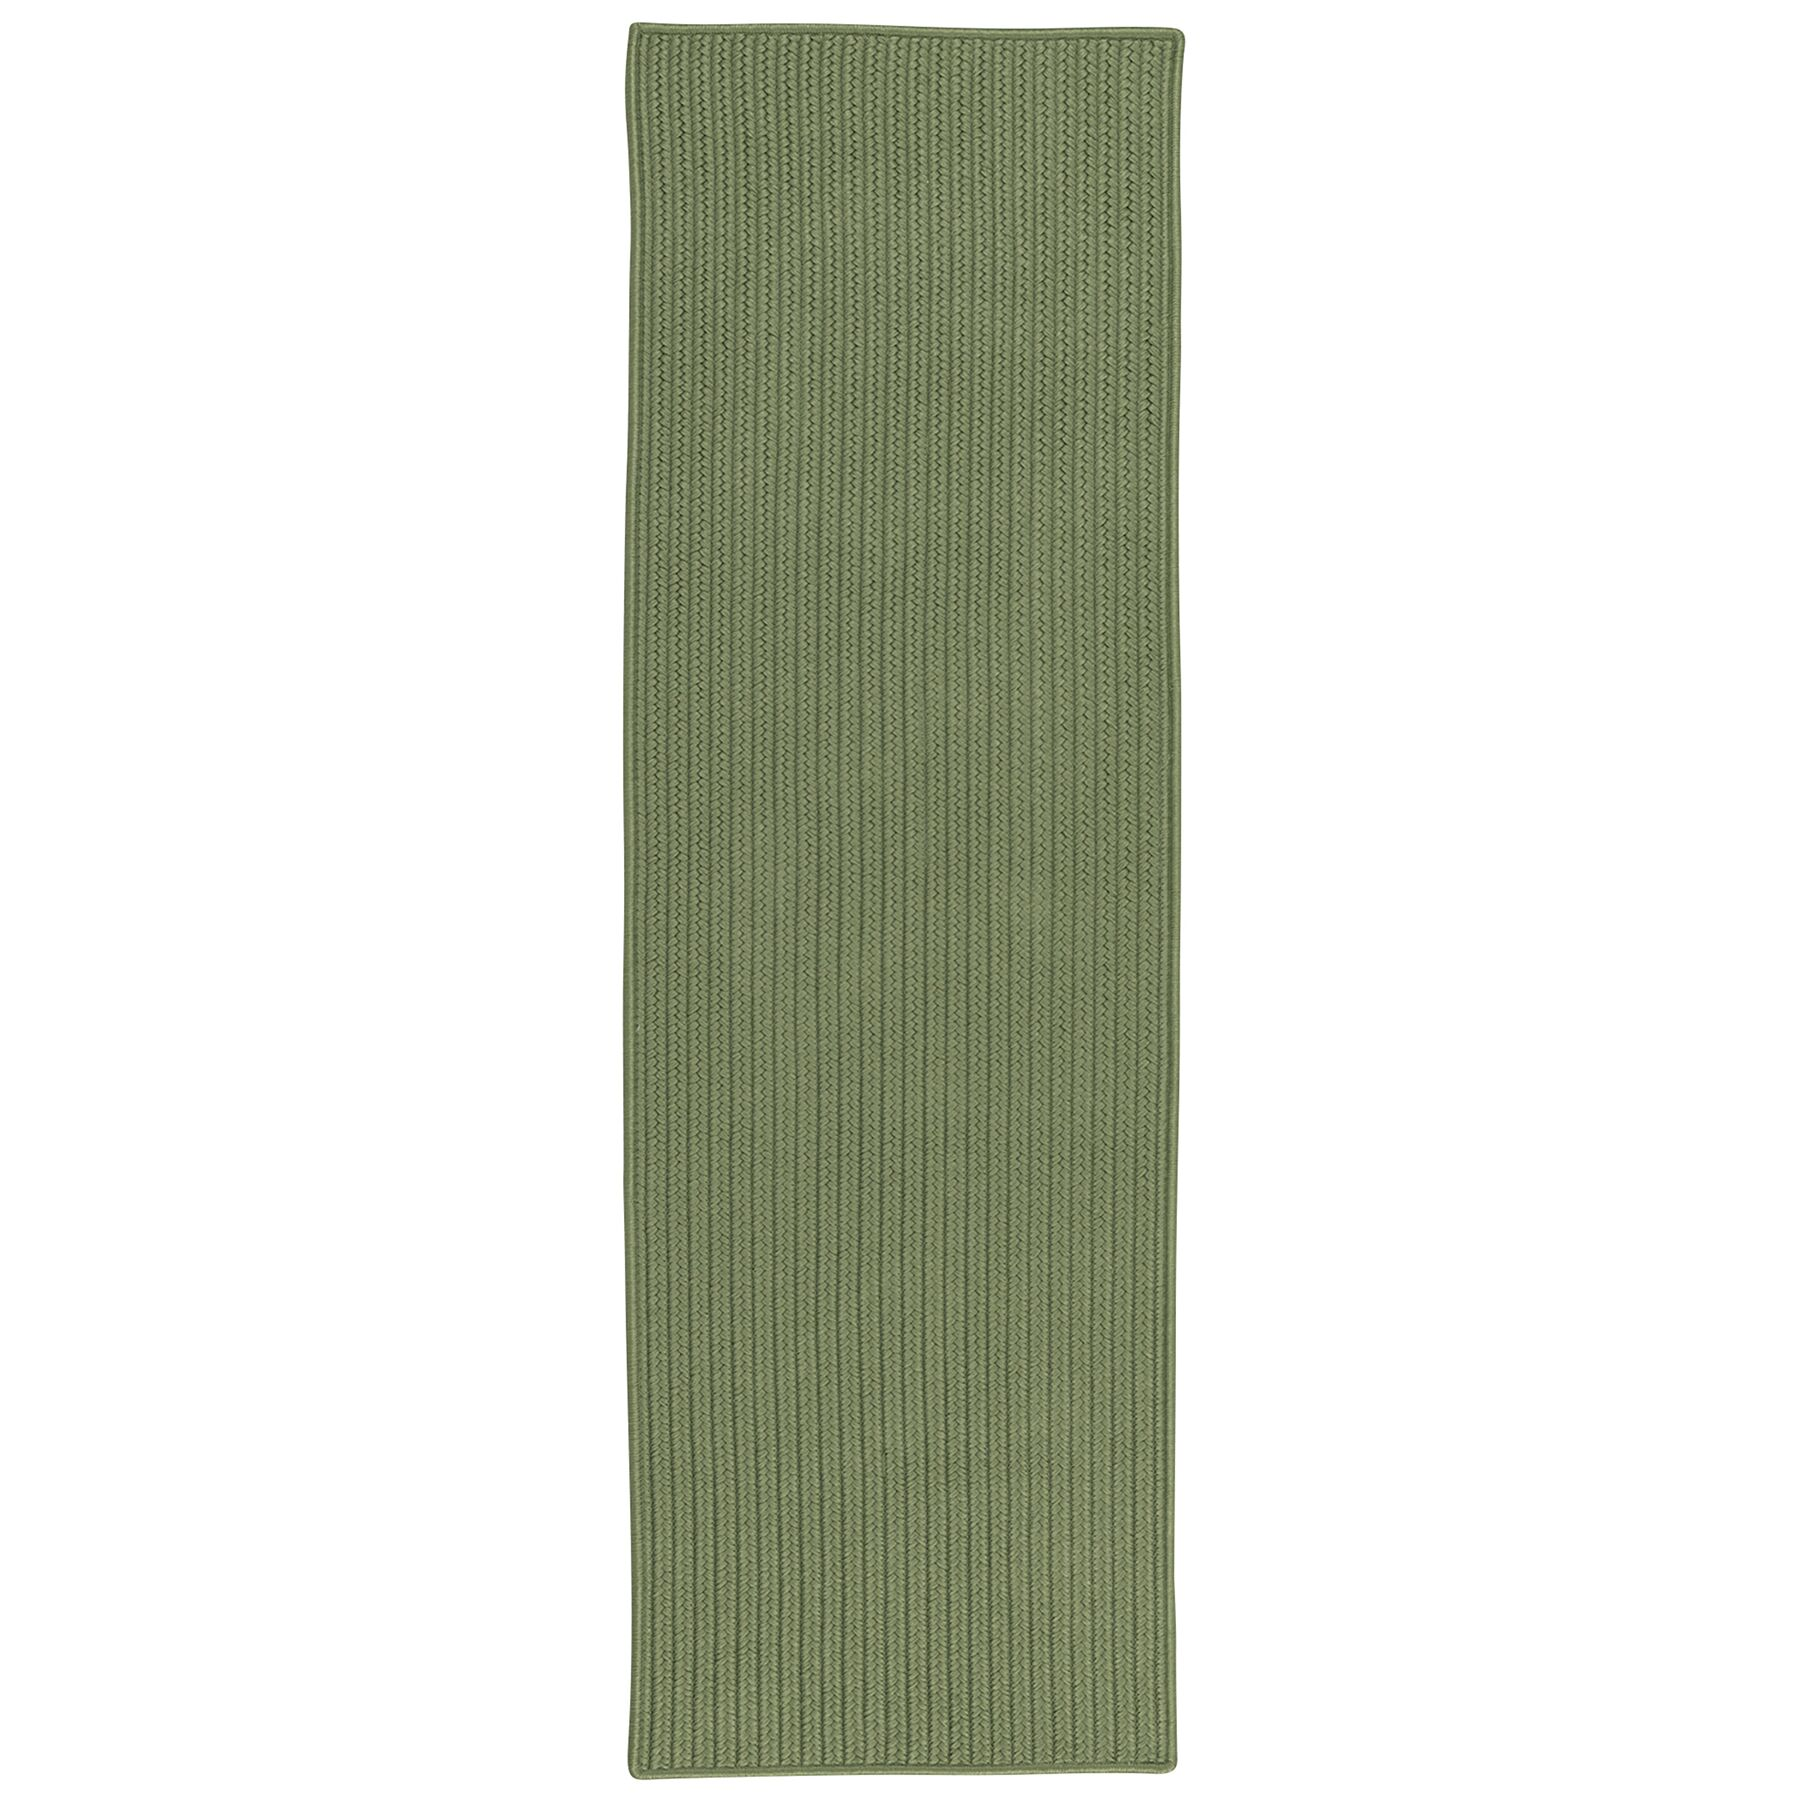 Kaleigh All-Purpose Mudroom Hand-Braided Moss Green Area Rug Rug Size: Runner 2' x 9'